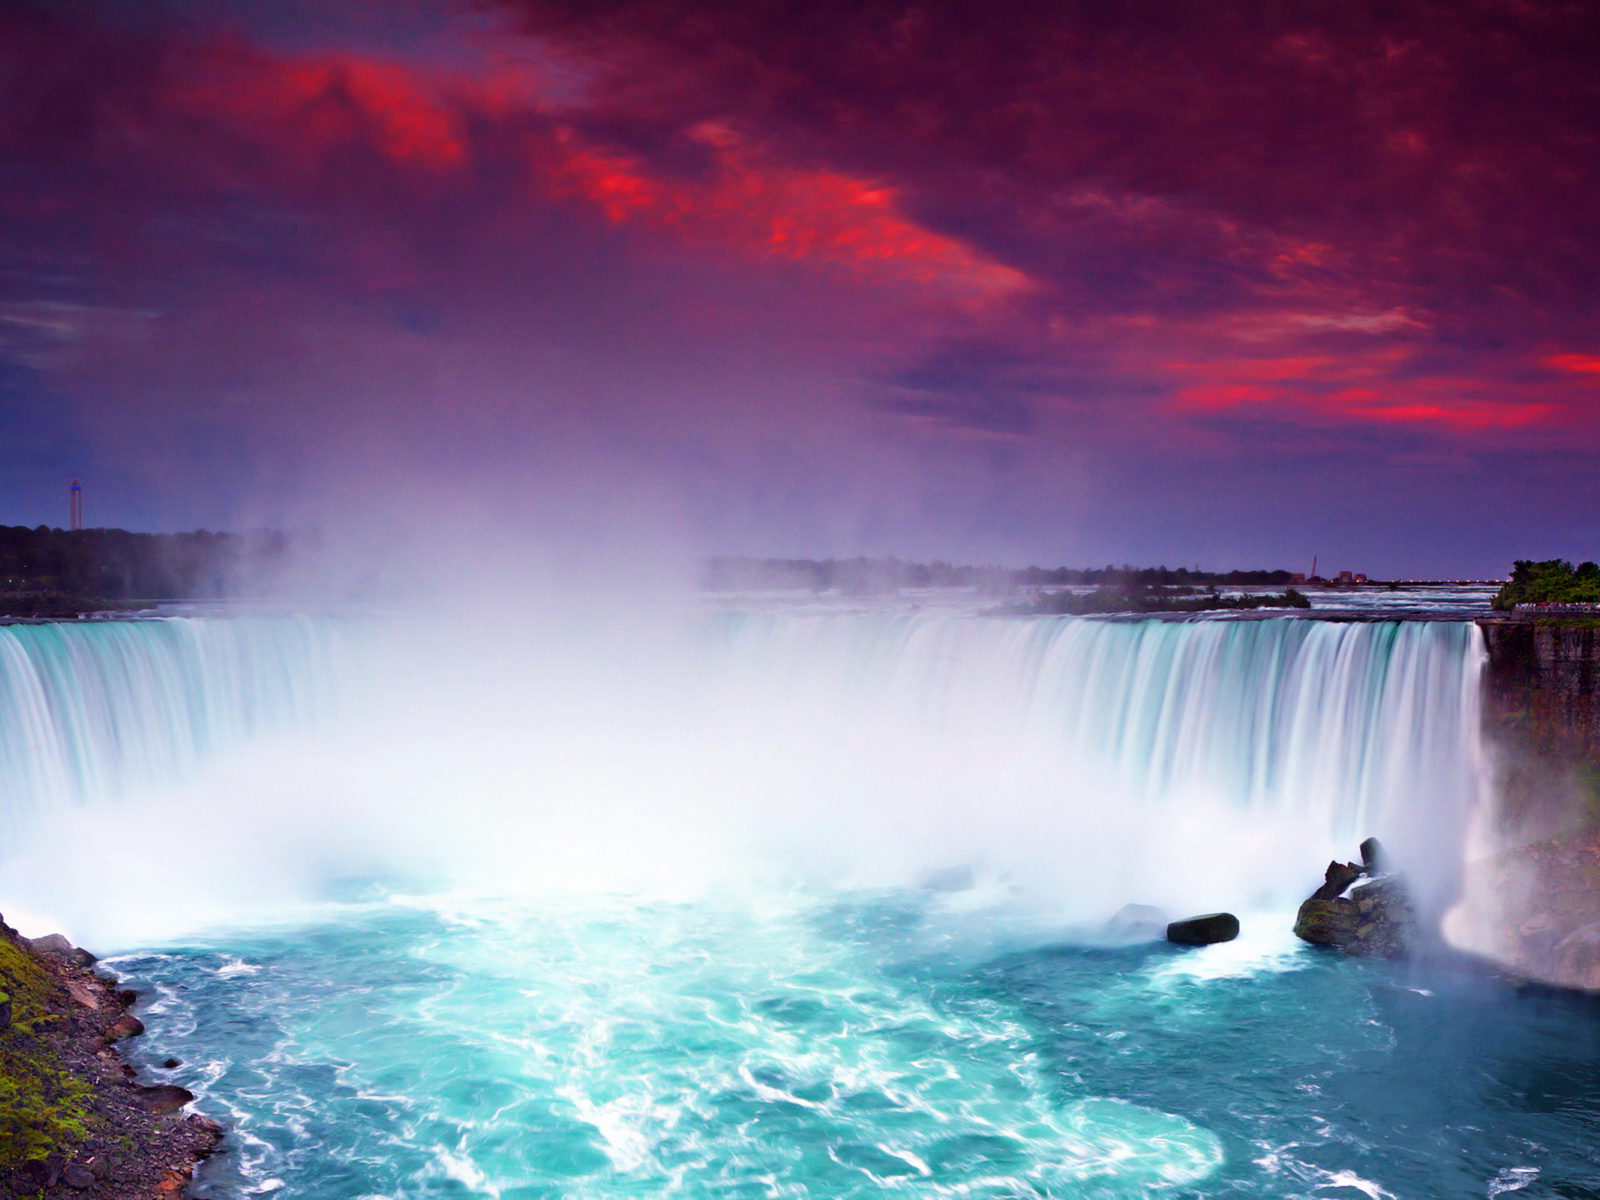 Niagara Falls Wallpaper For Desktop Niagara Falls At Night Lights Hd Wallpaper For Desktop